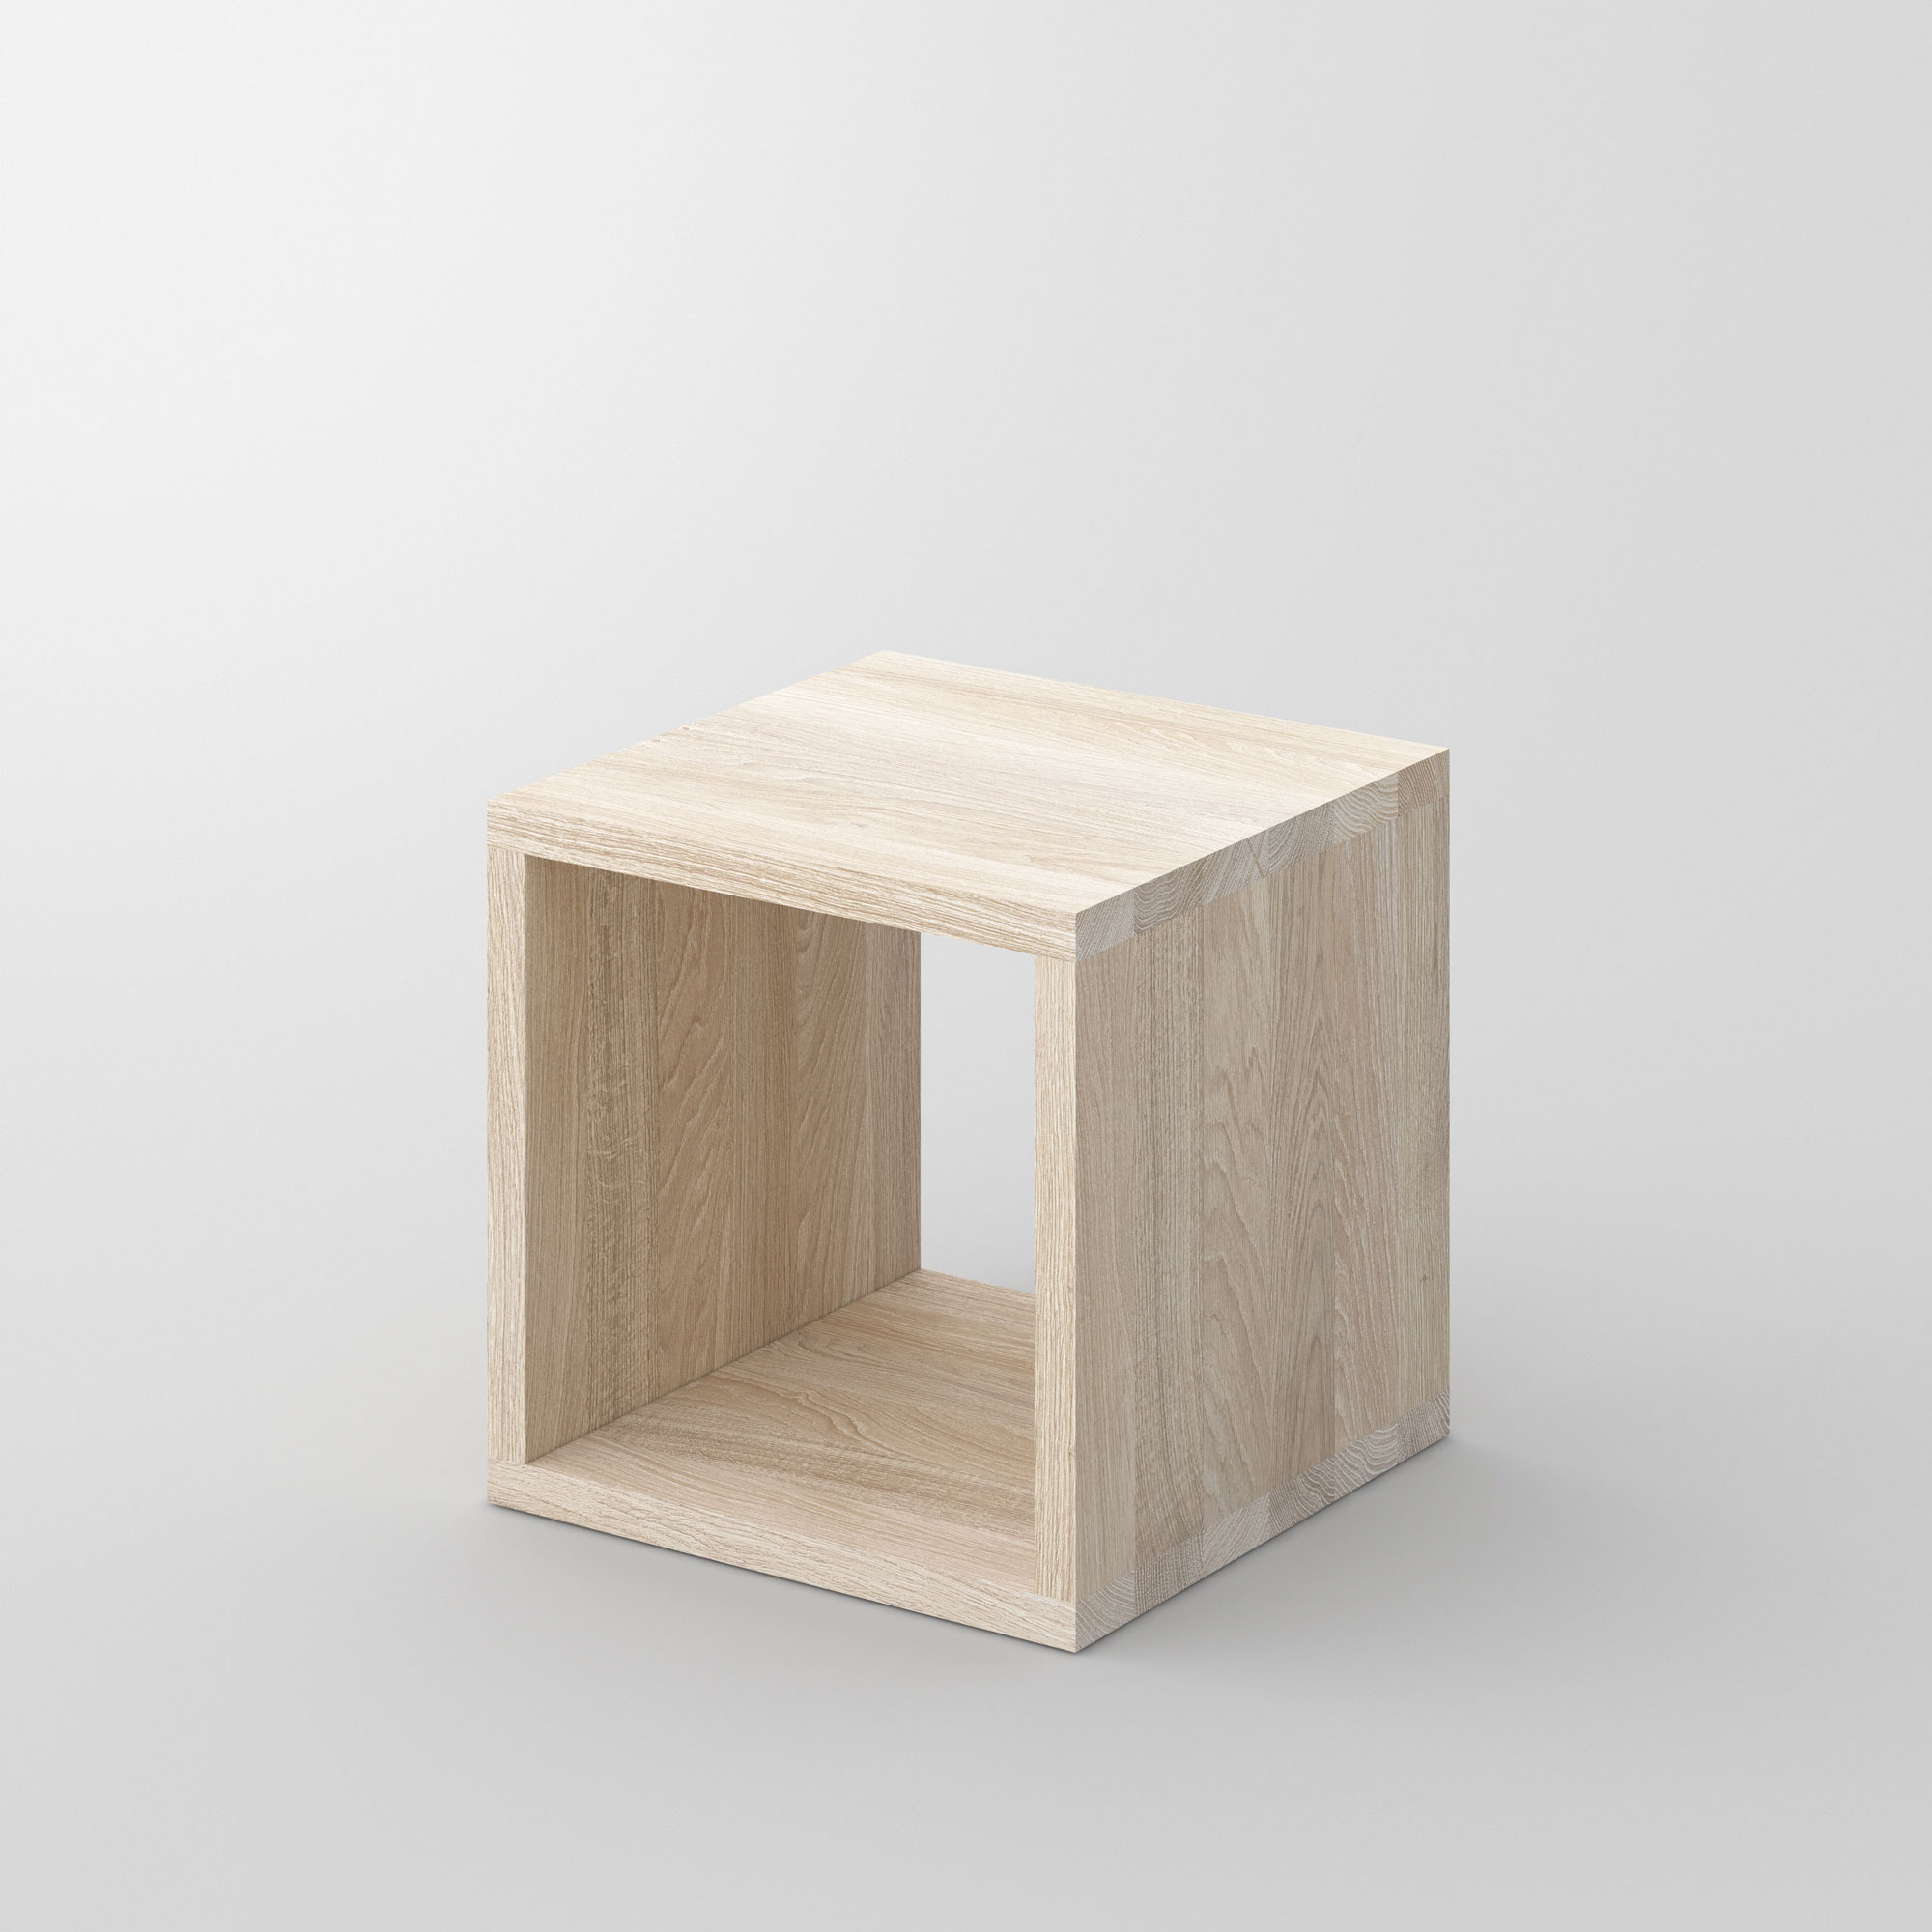 Solid Wood Night Table MENA B cam1 custom made in solid wood by vitamin design